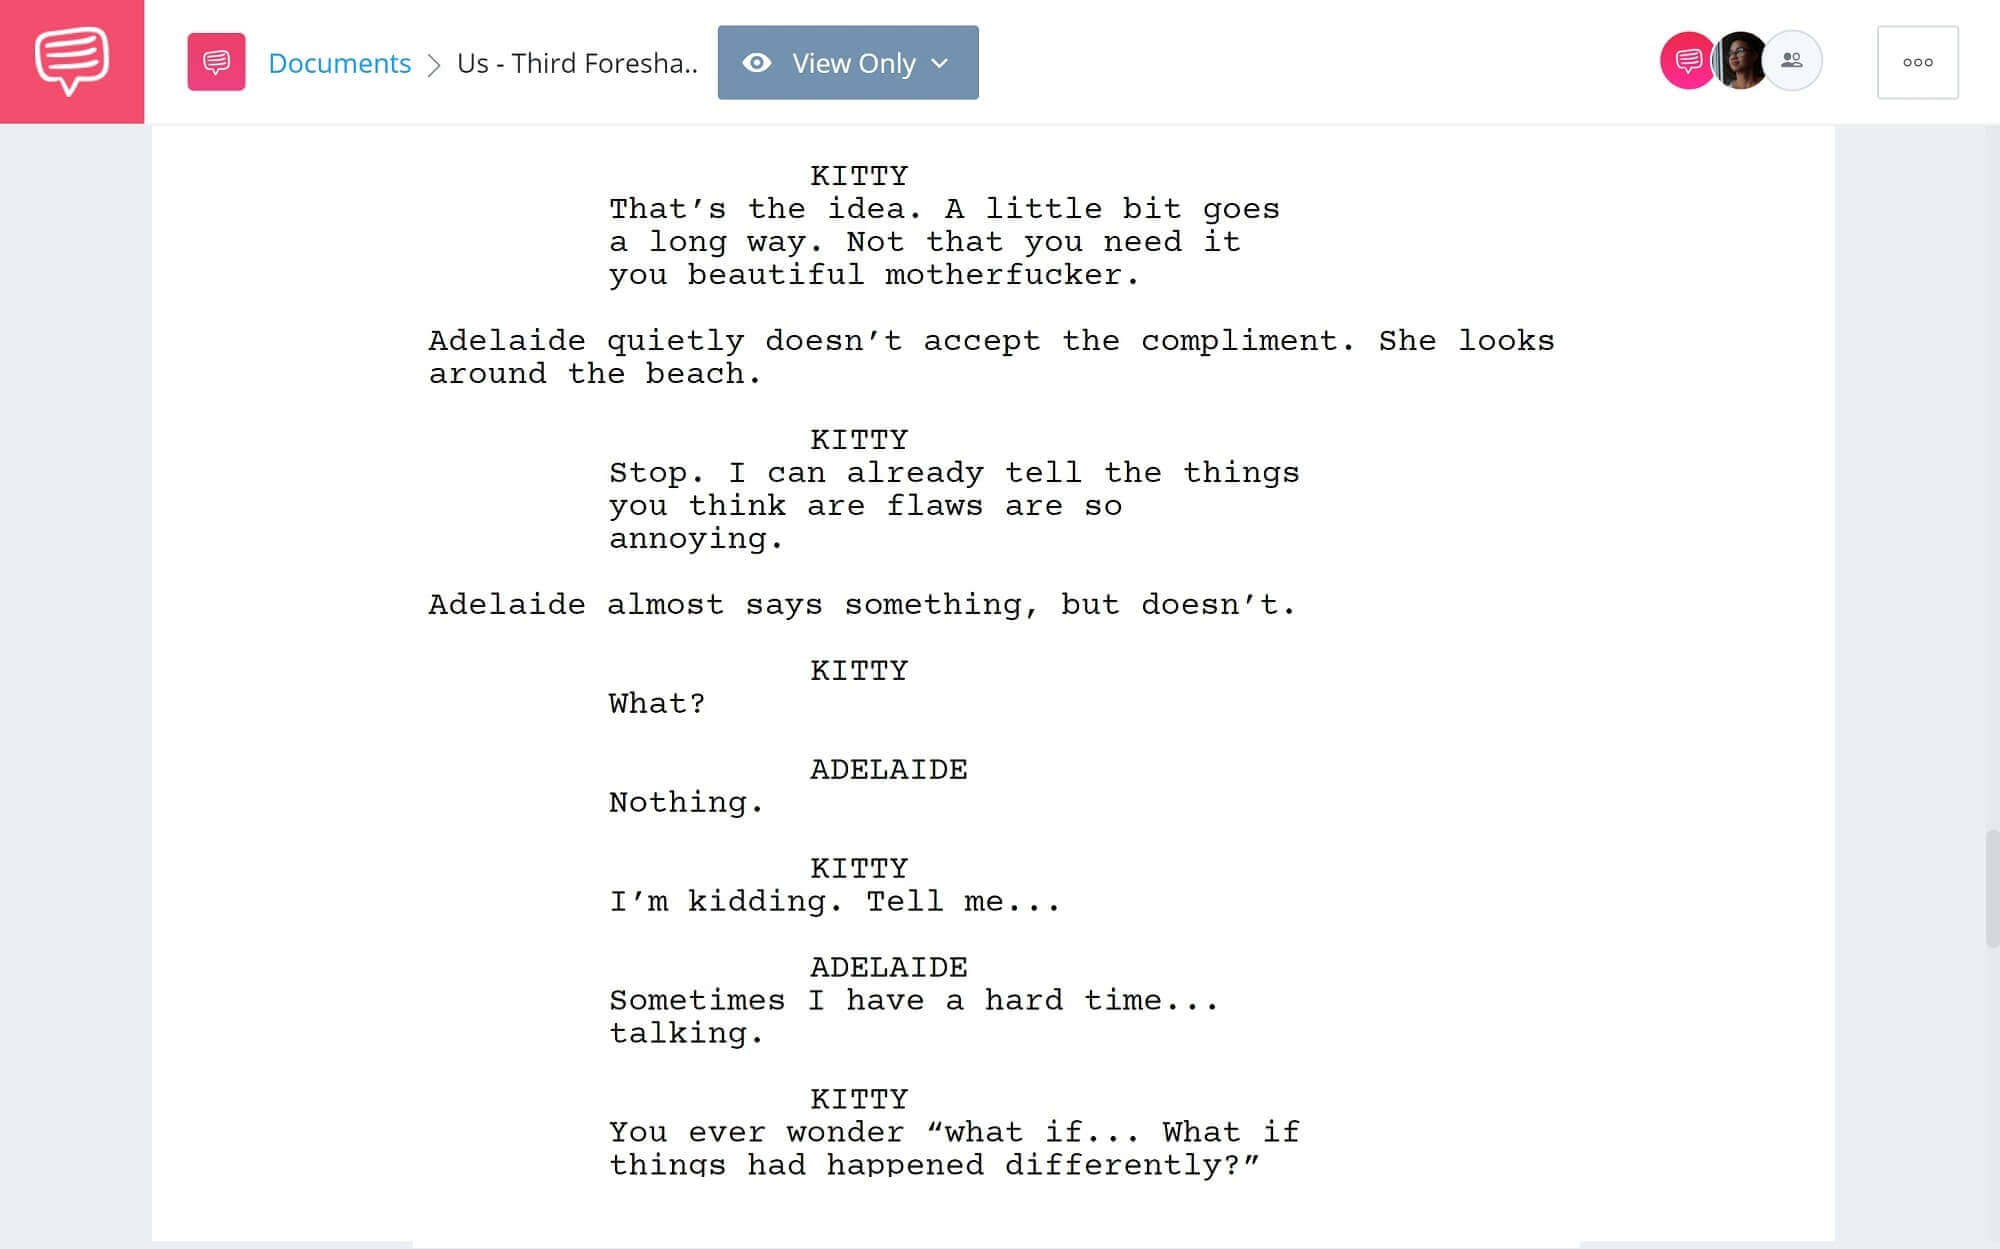 Foreshadowing Example From Us to Parasite - Third Foreshadowing Example from Us - StudioBinder Screenwriting Software